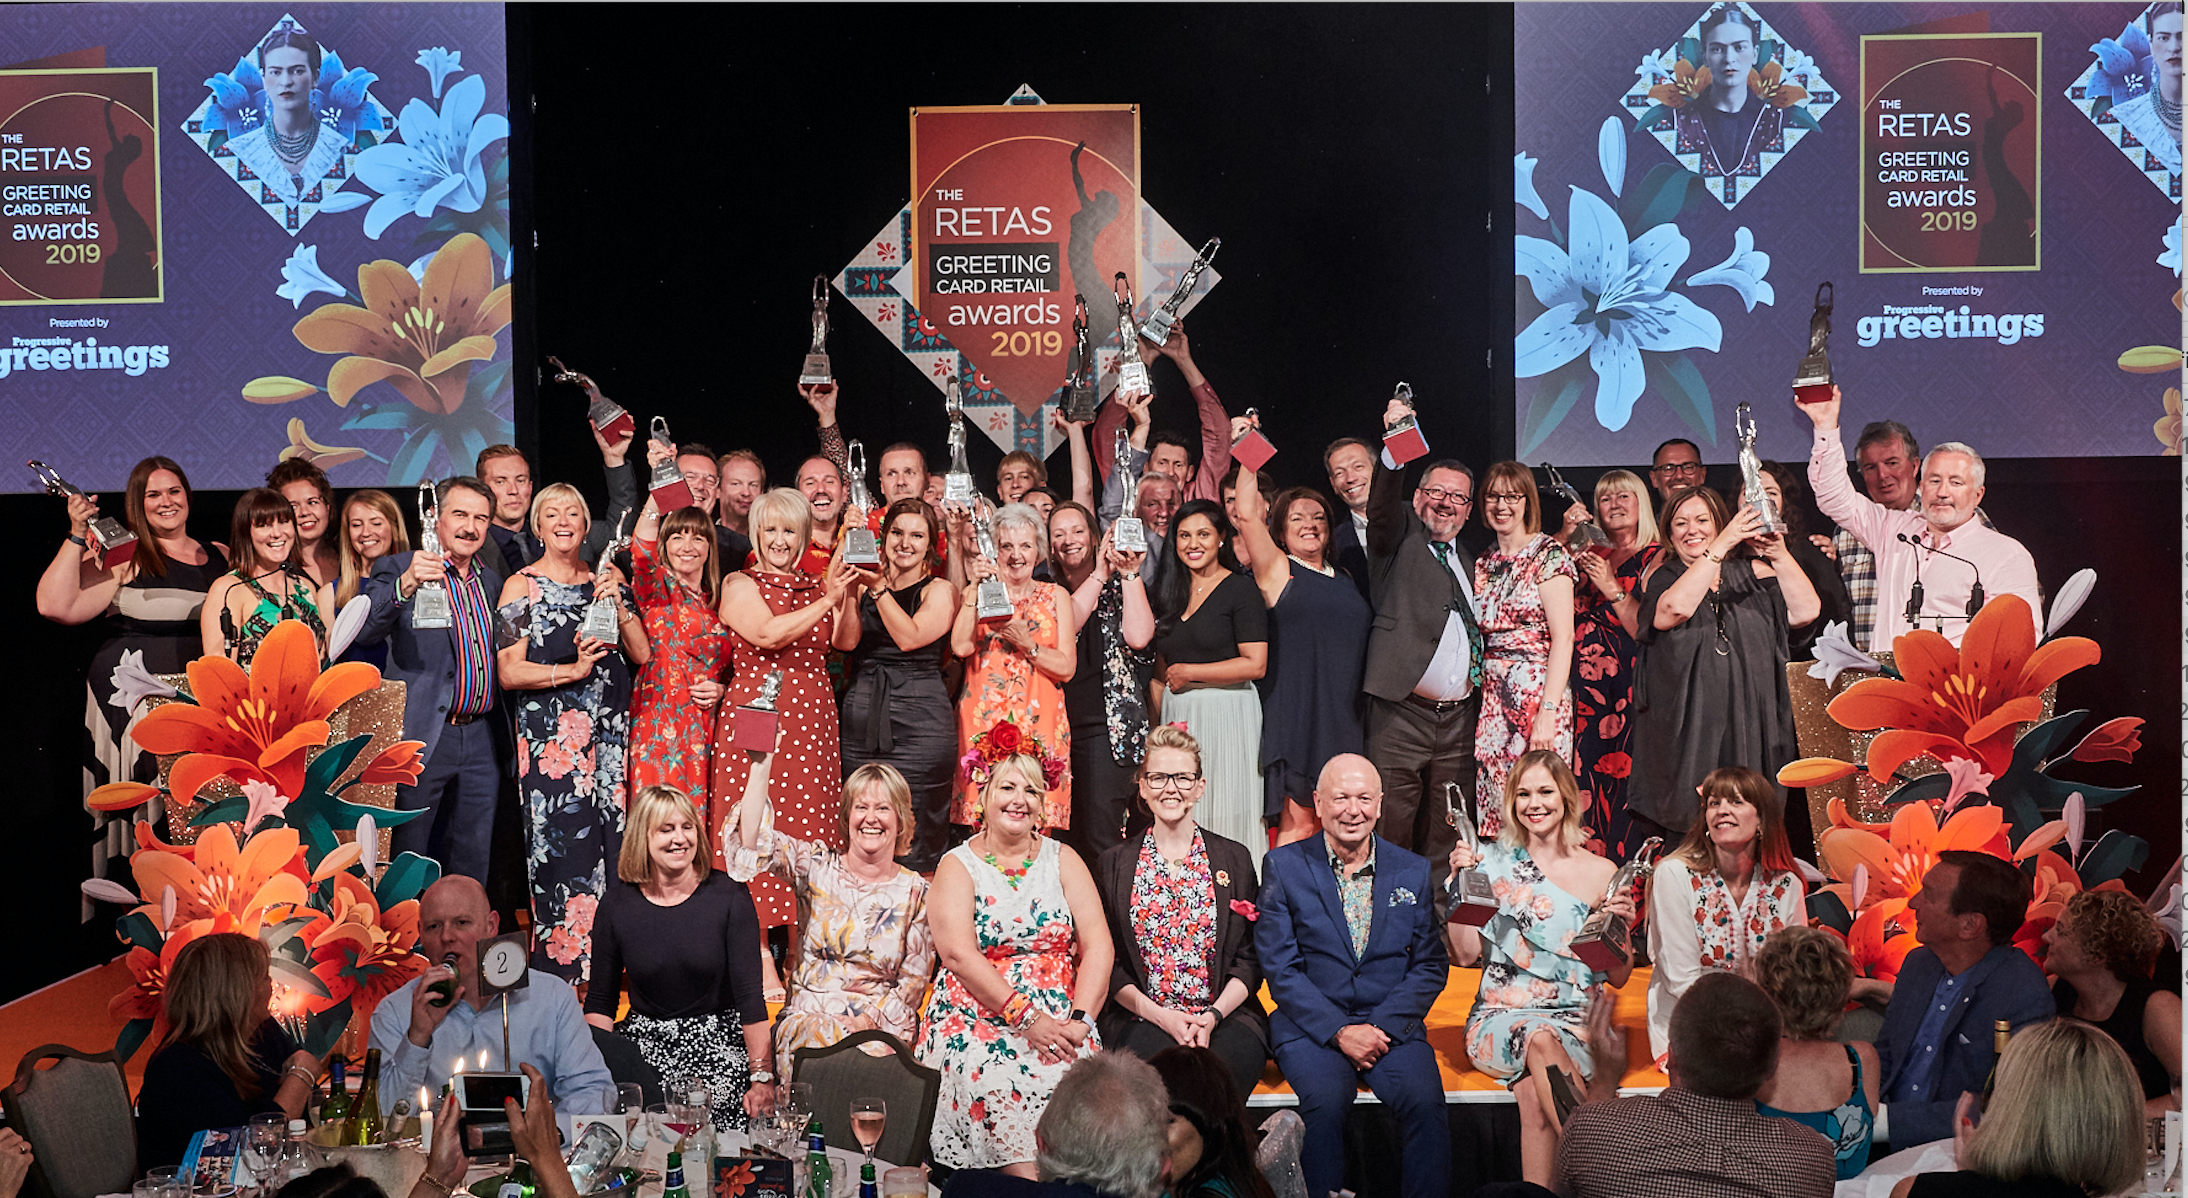 Above: The winners of The Retas 2019 on stage with their trophies. Who will be up there this year?!